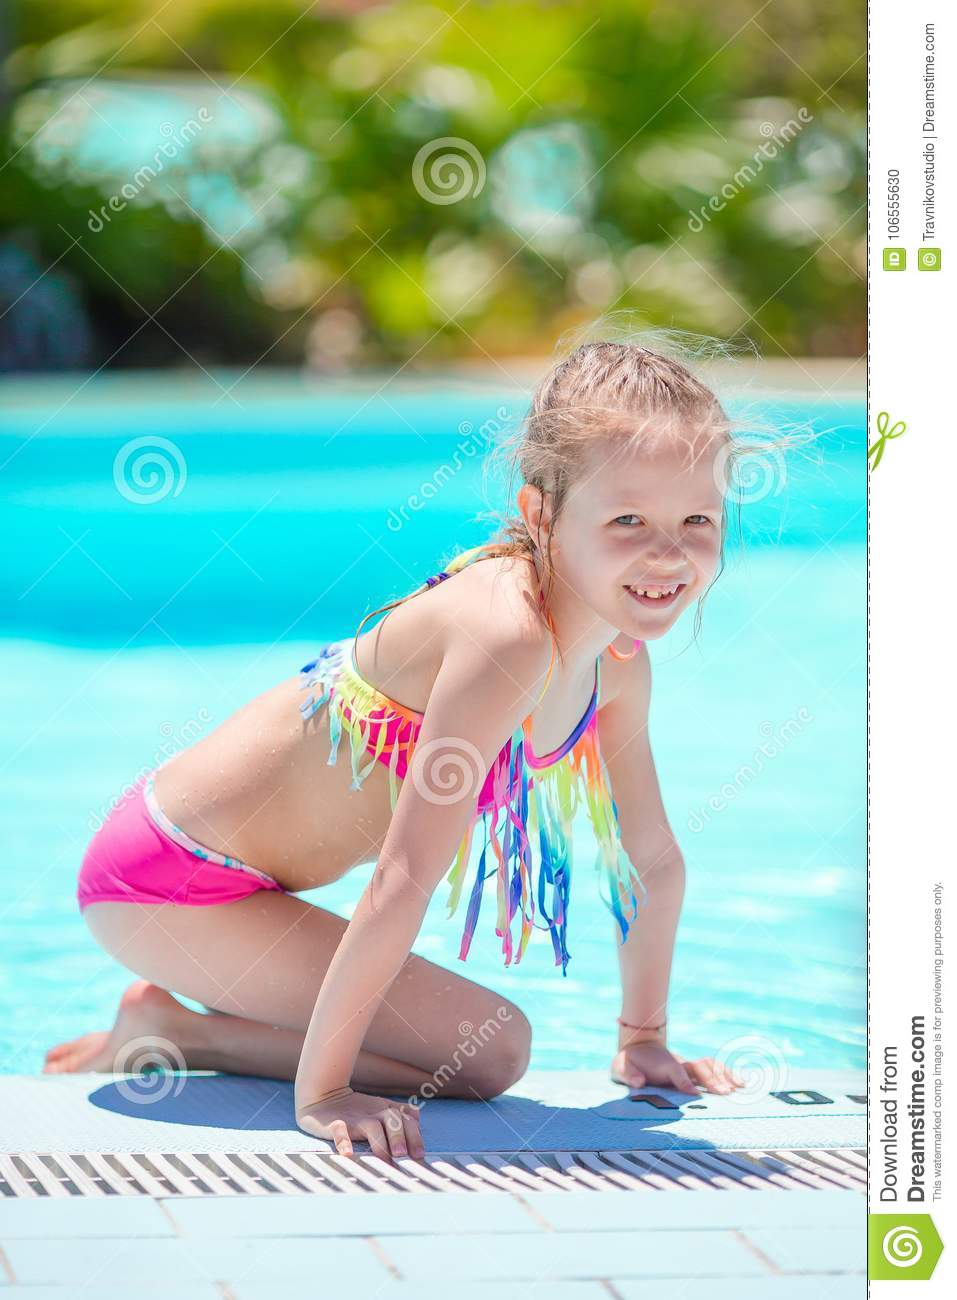 Gfk Pool Leipzig Little Active Adorable Girl In Outdoor Swimming Pool Ready To Swim